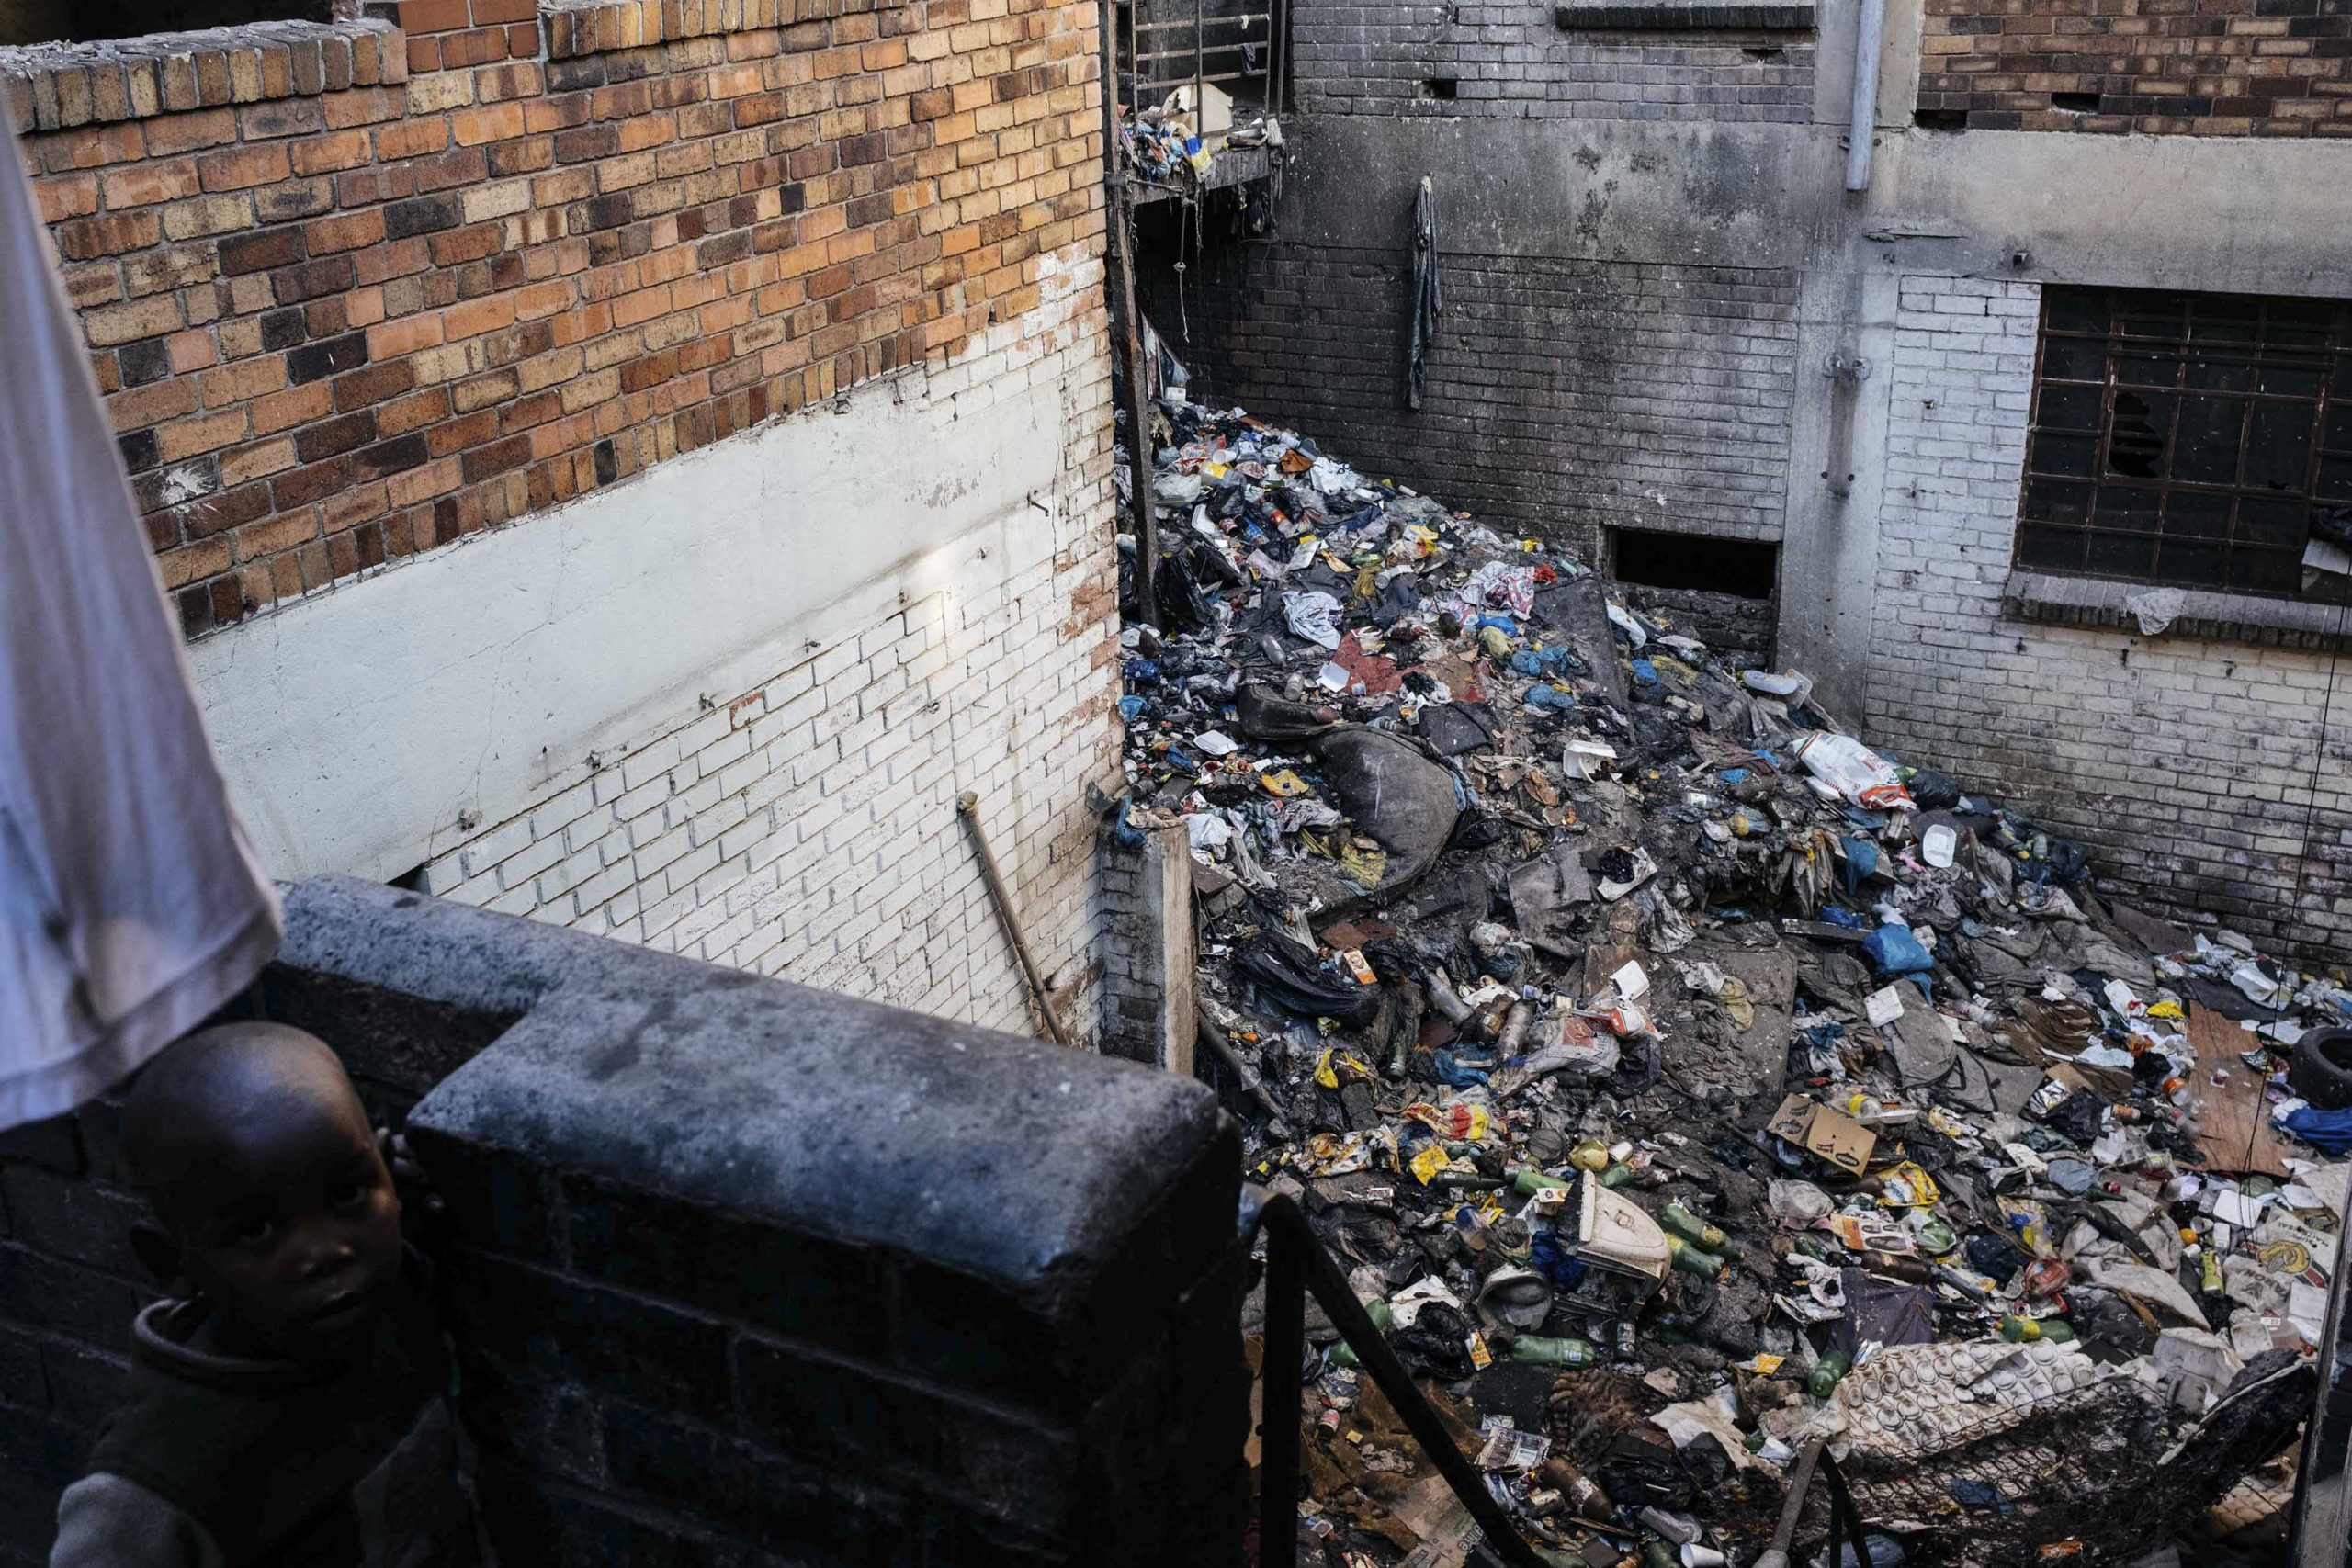 16 July 2020: Rubbish piles up in the courtyard of a derelict building, a health hazard residents have been living with since before the coronavirus pandemic.